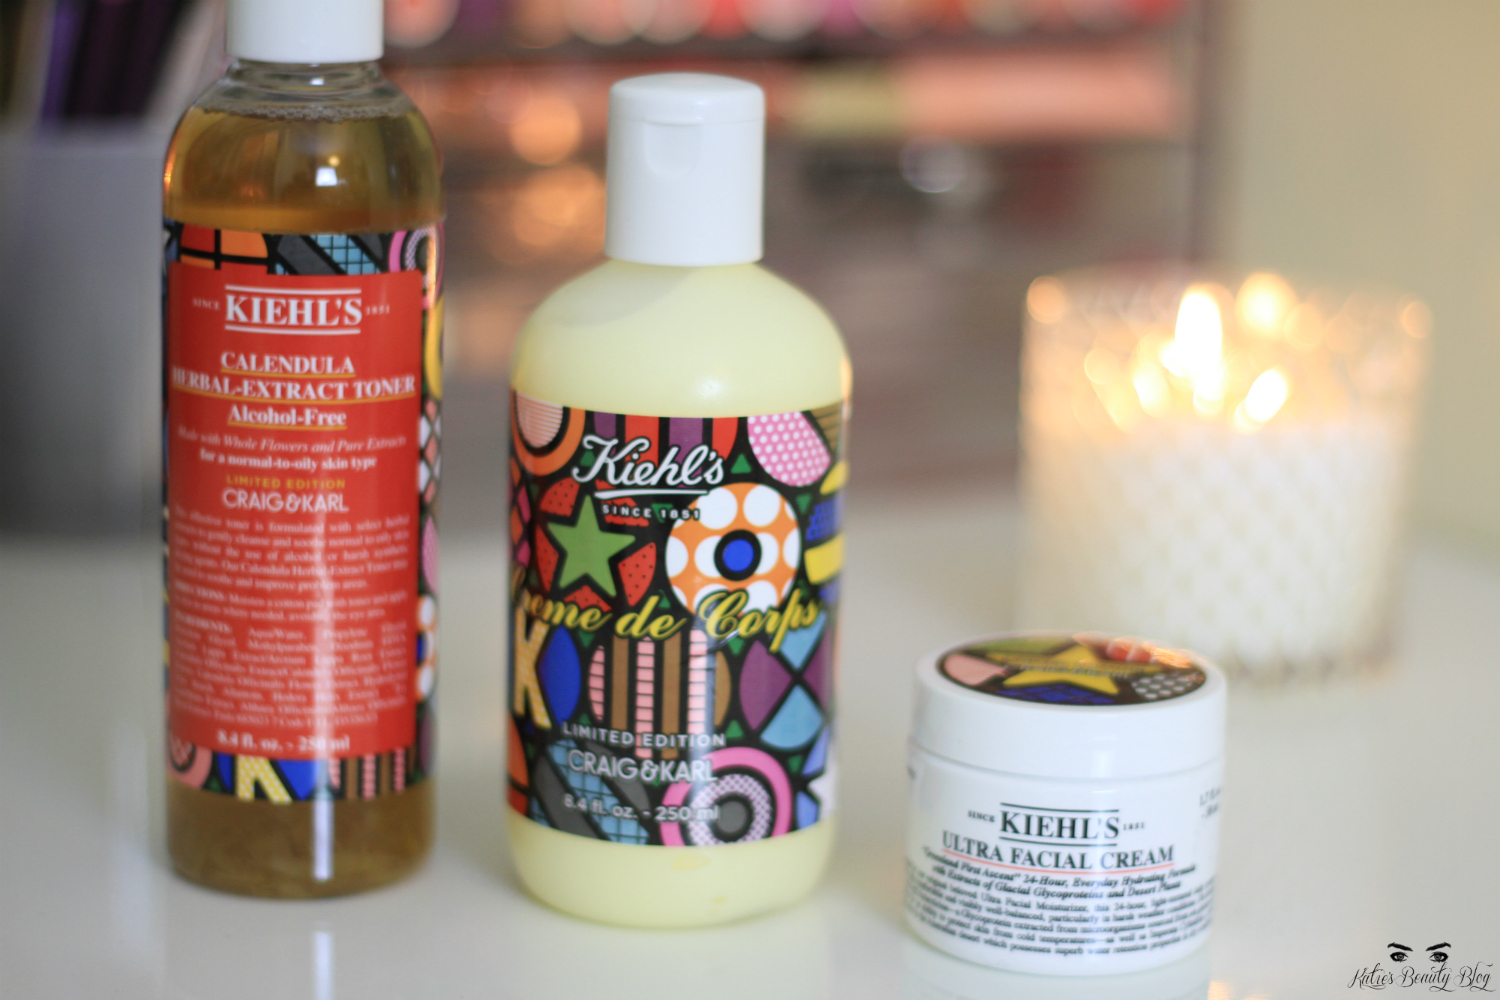 Katie's Beauty Blog: Last Minute Christmas Gift Guide!